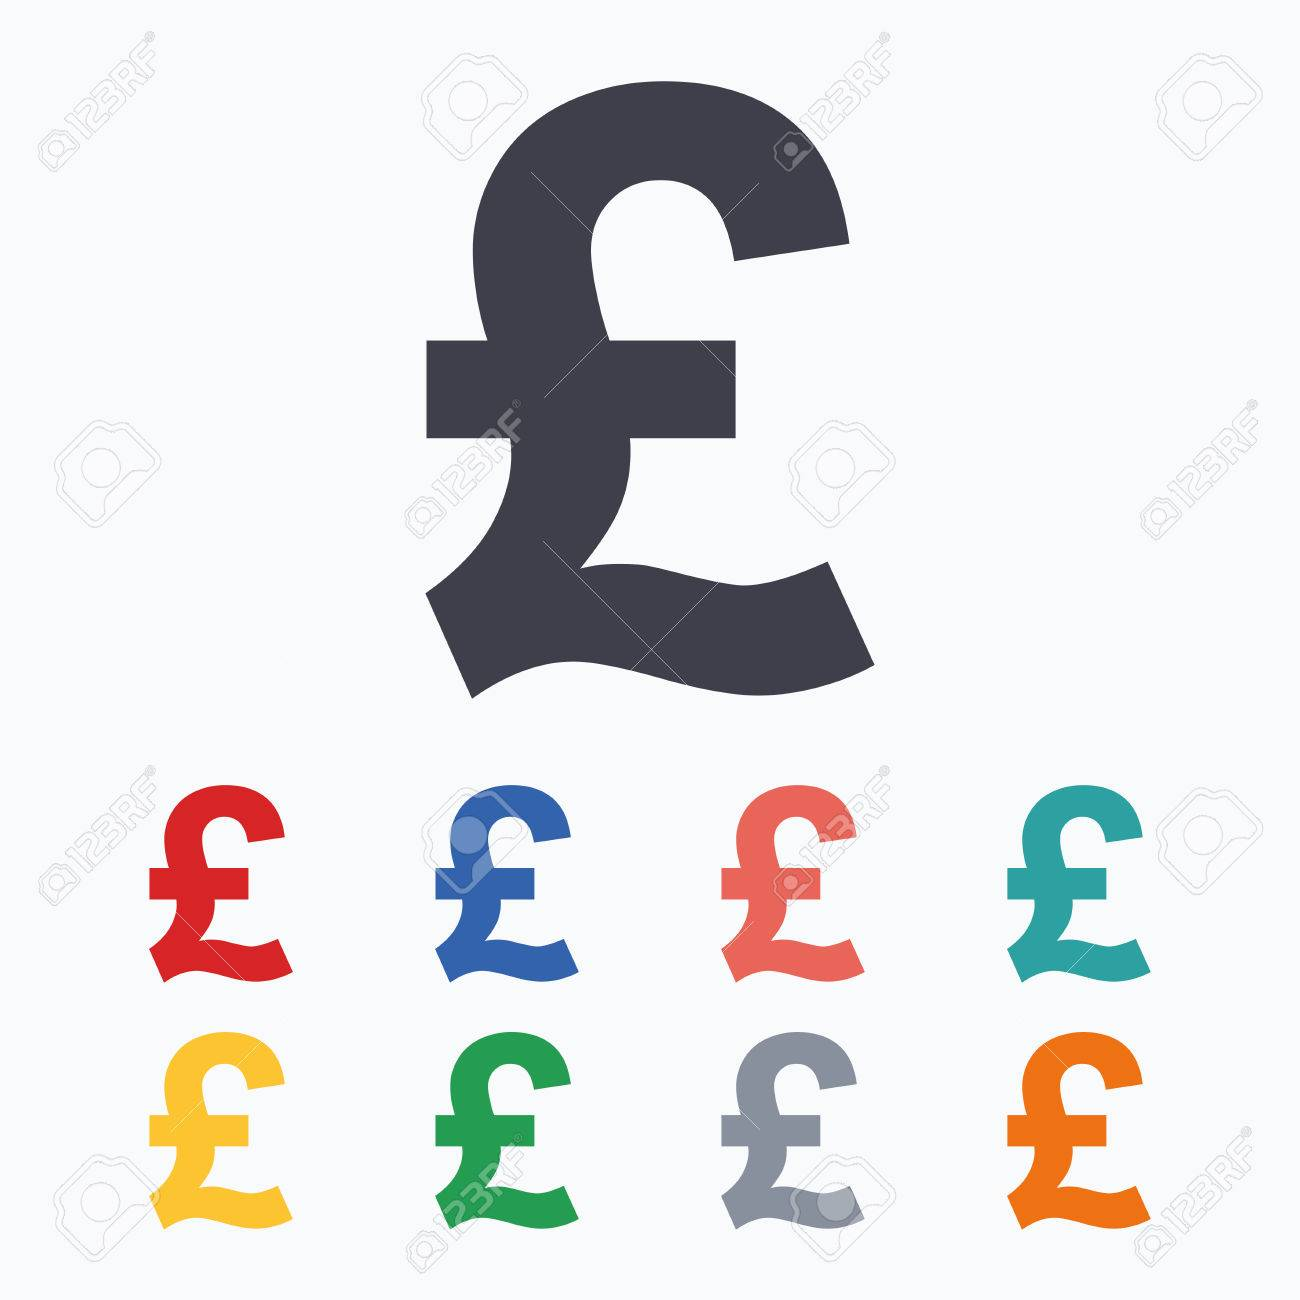 Pound sign icon gbp currency symbol money label colored flat pound sign icon gbp currency symbol money label colored flat icons on white buycottarizona Choice Image